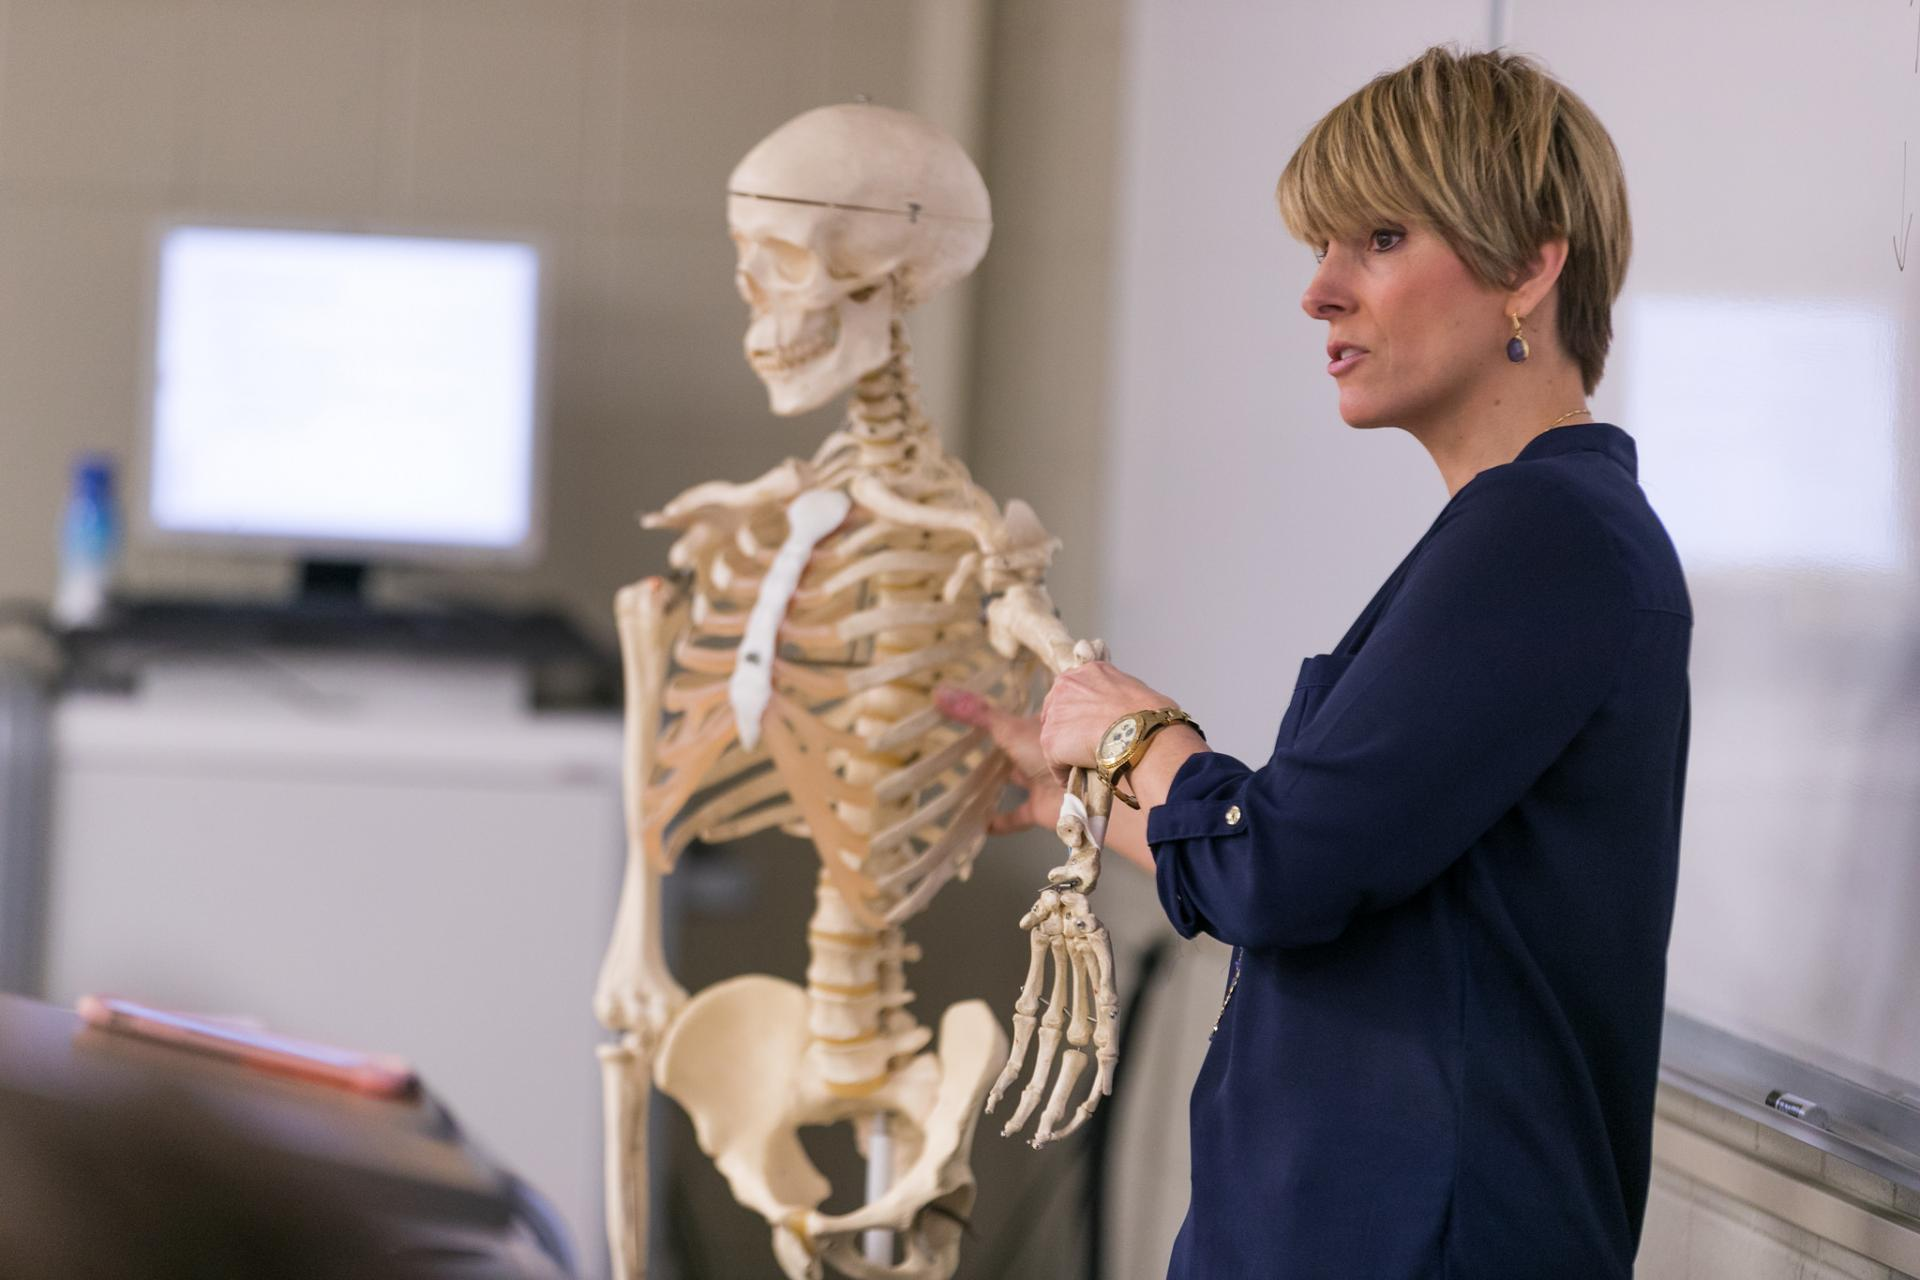 Professor Kendall Selsky teaching using a skeleton.